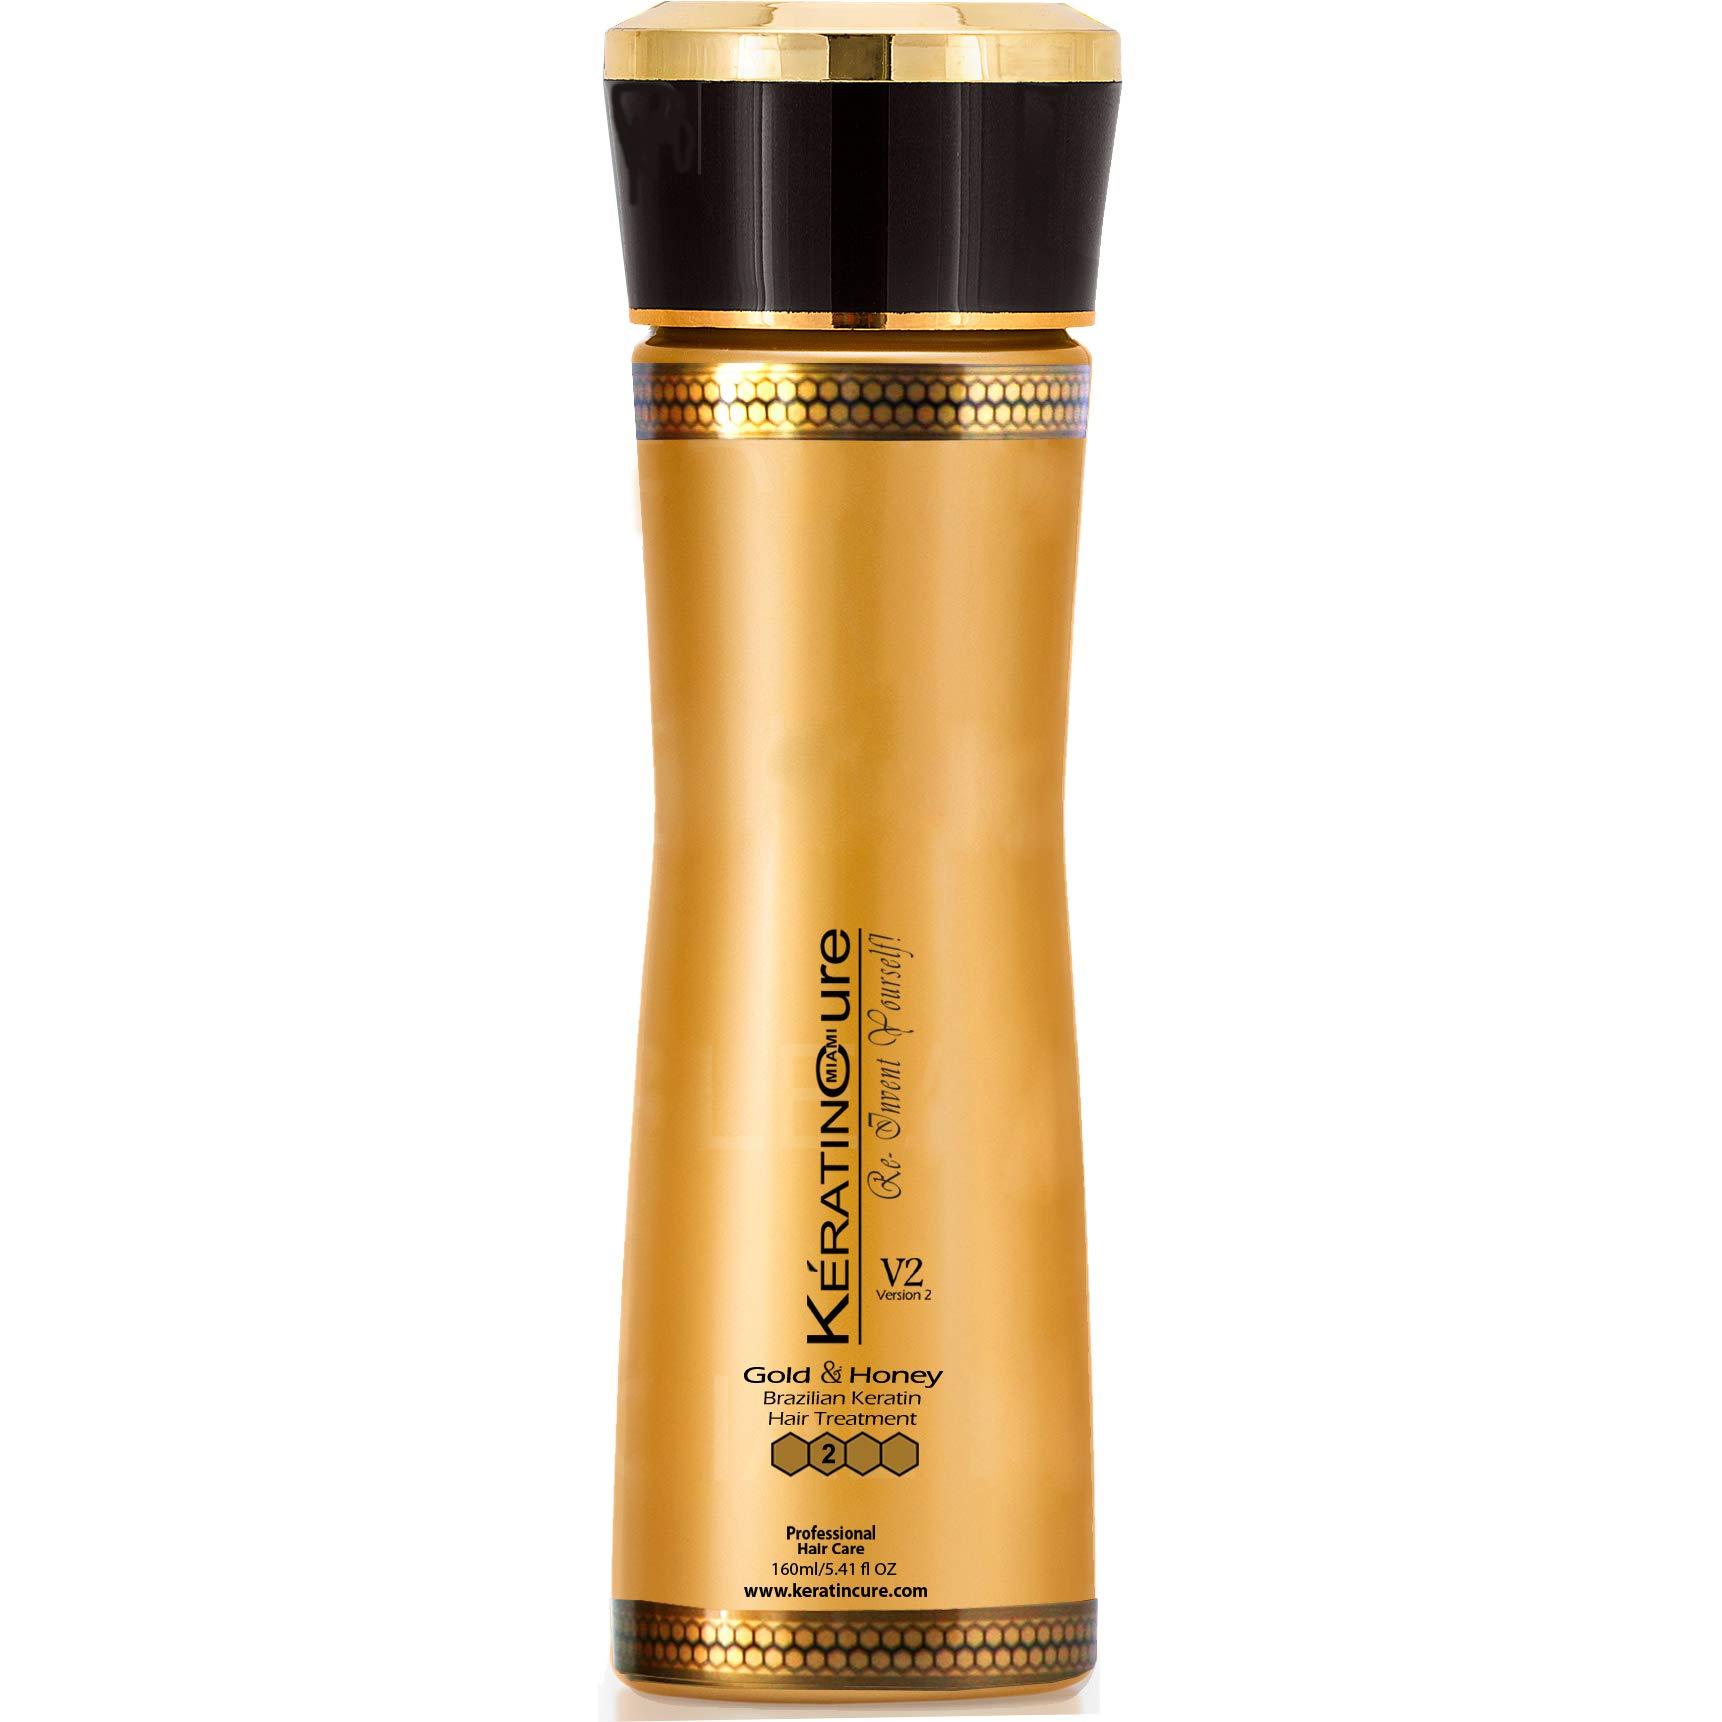 Keratin Cure Best Treatment Gold and Honey V2 Creme 5 Ounces Intensive Collagen Professional Complex with Argan Oil Nourishing Straightening Damaged Dry Frizzy Coarse Curly African Ethnic Wavy Hair